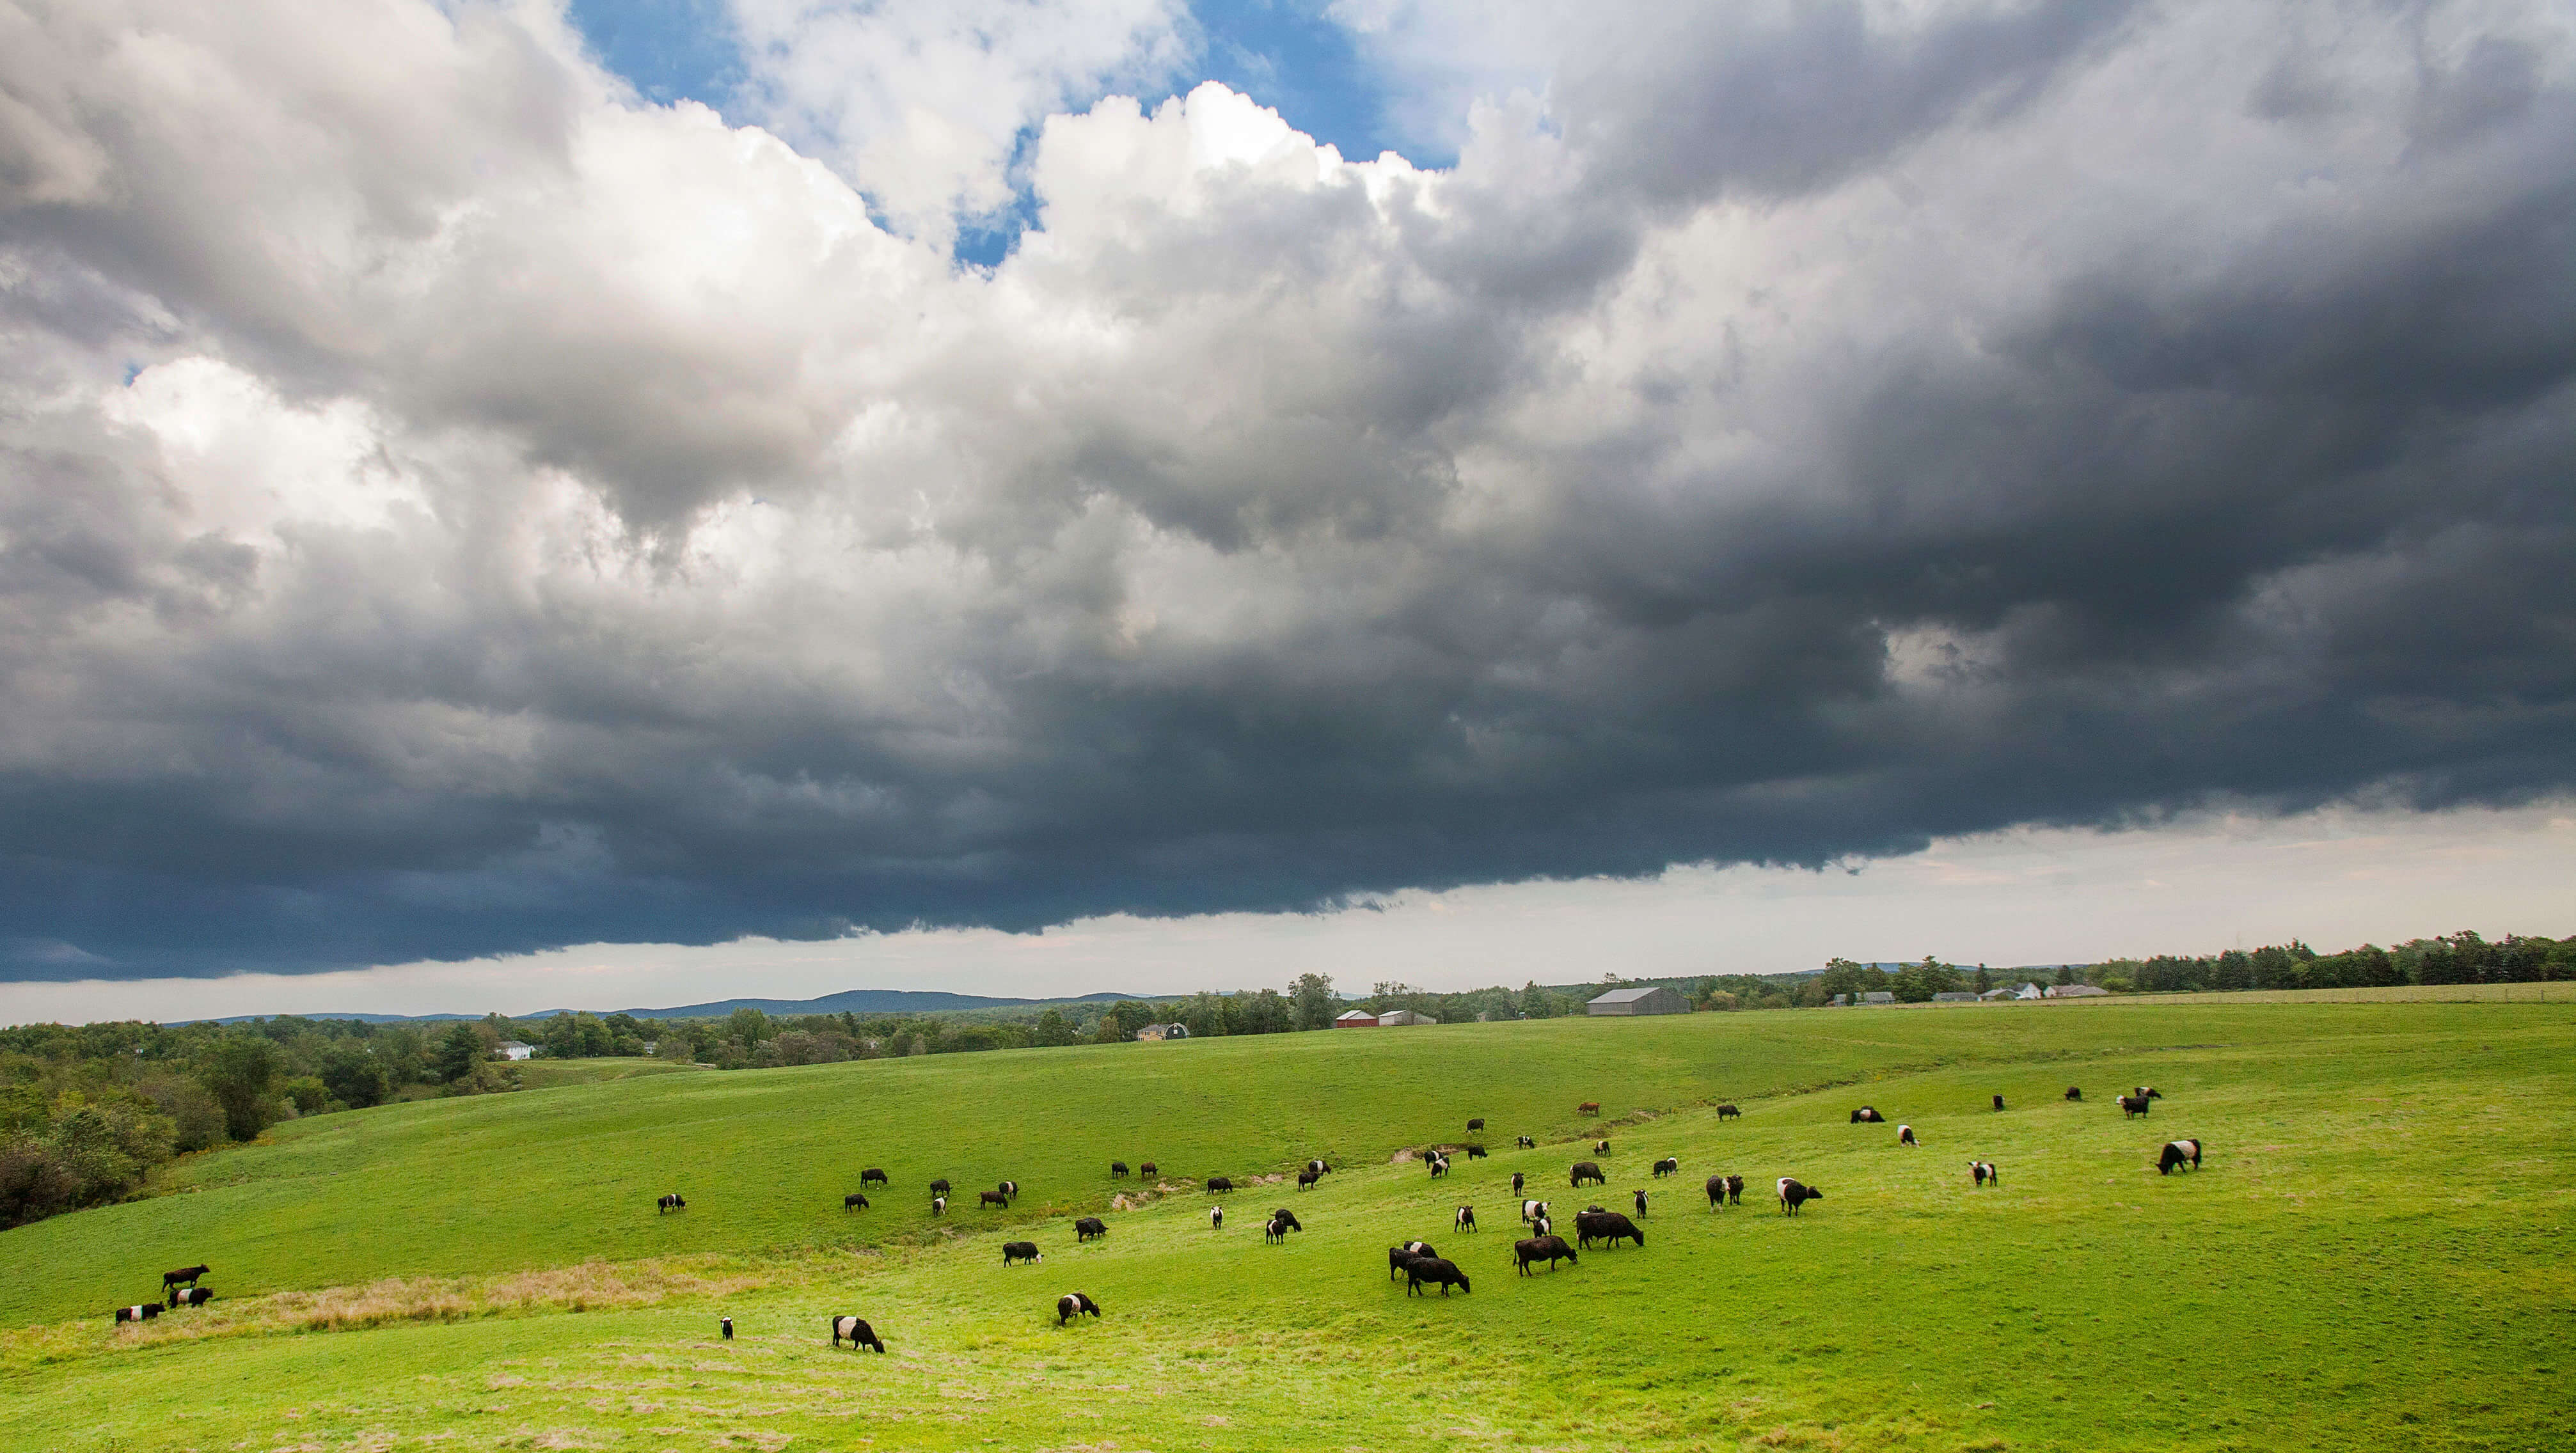 Clouds over cow field